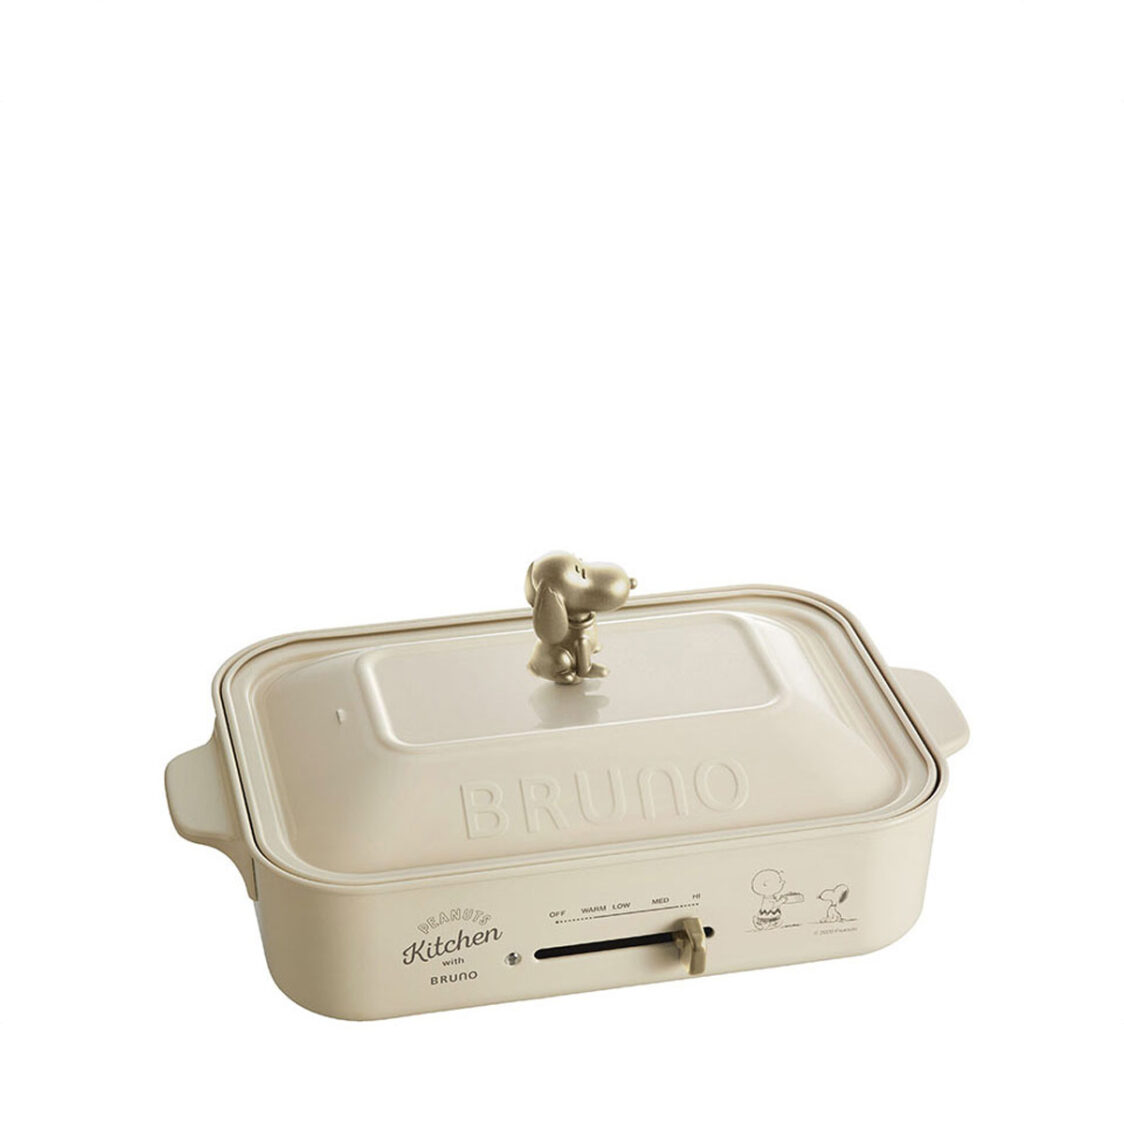 Bruno x Snoopy Compact Hotplate